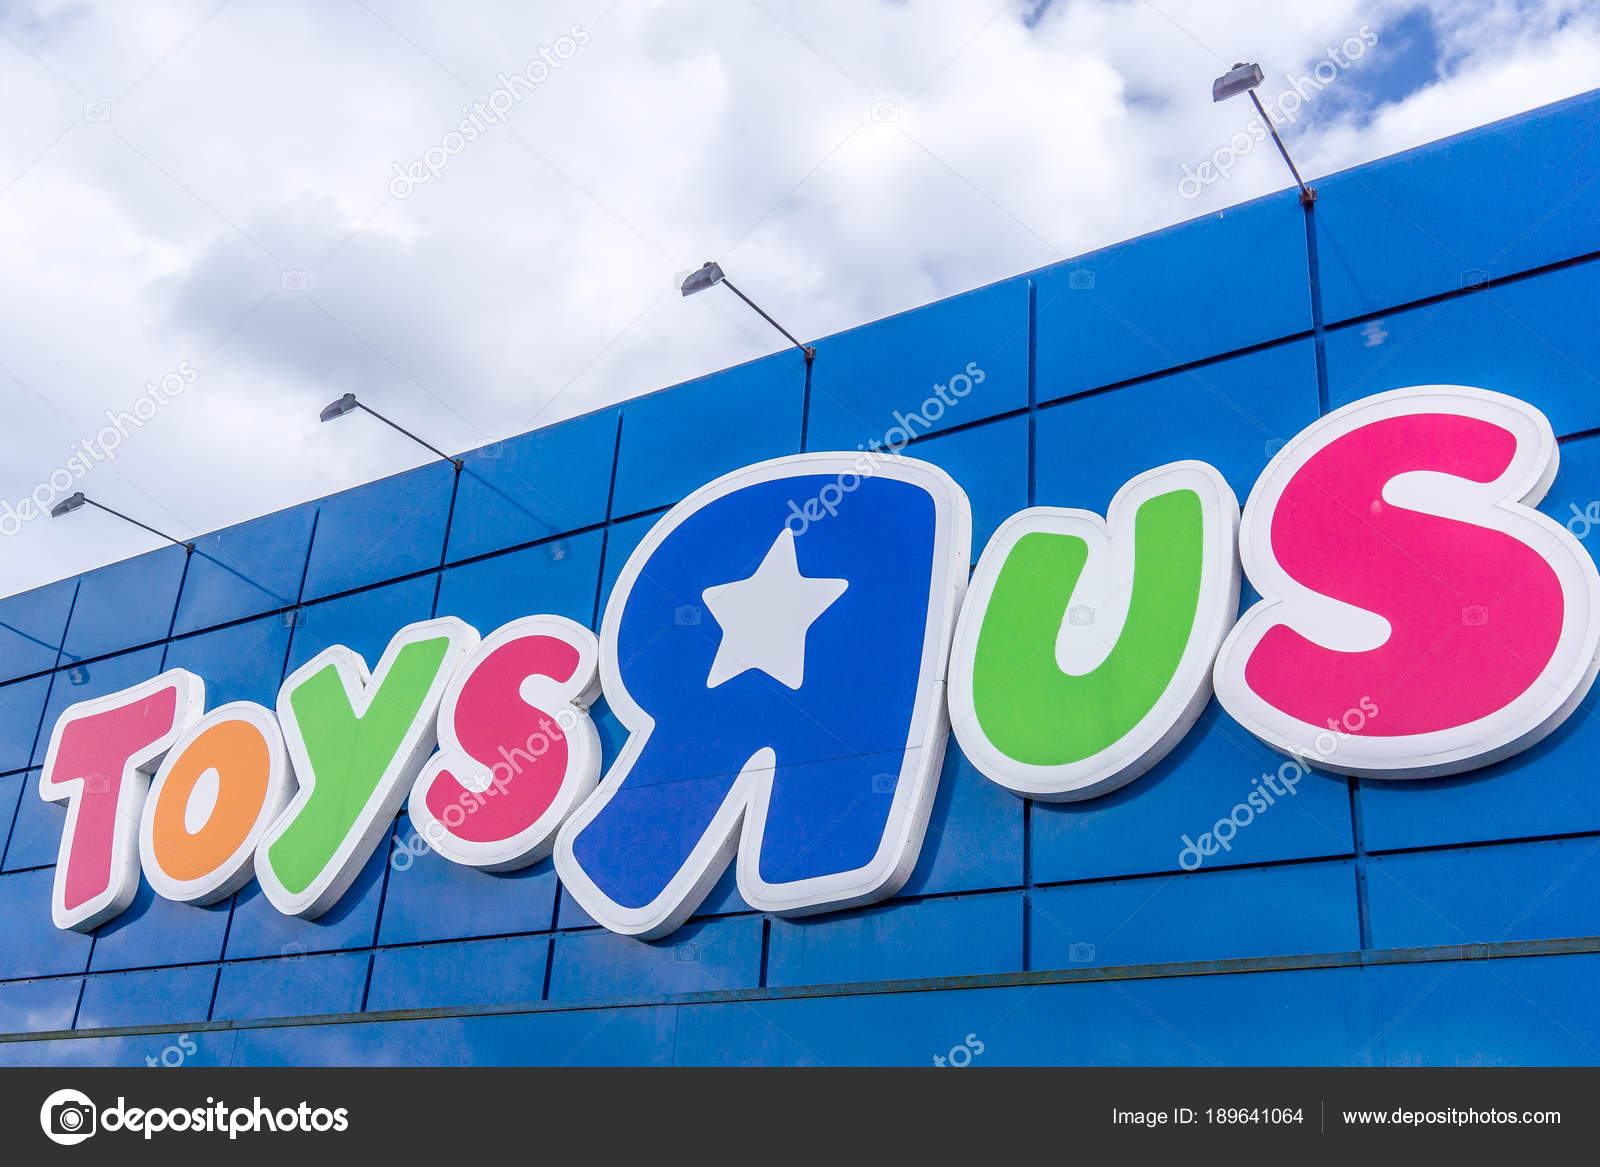 Sign Against Blue Sky Toysrus Is An American Toy Retailer Toys R